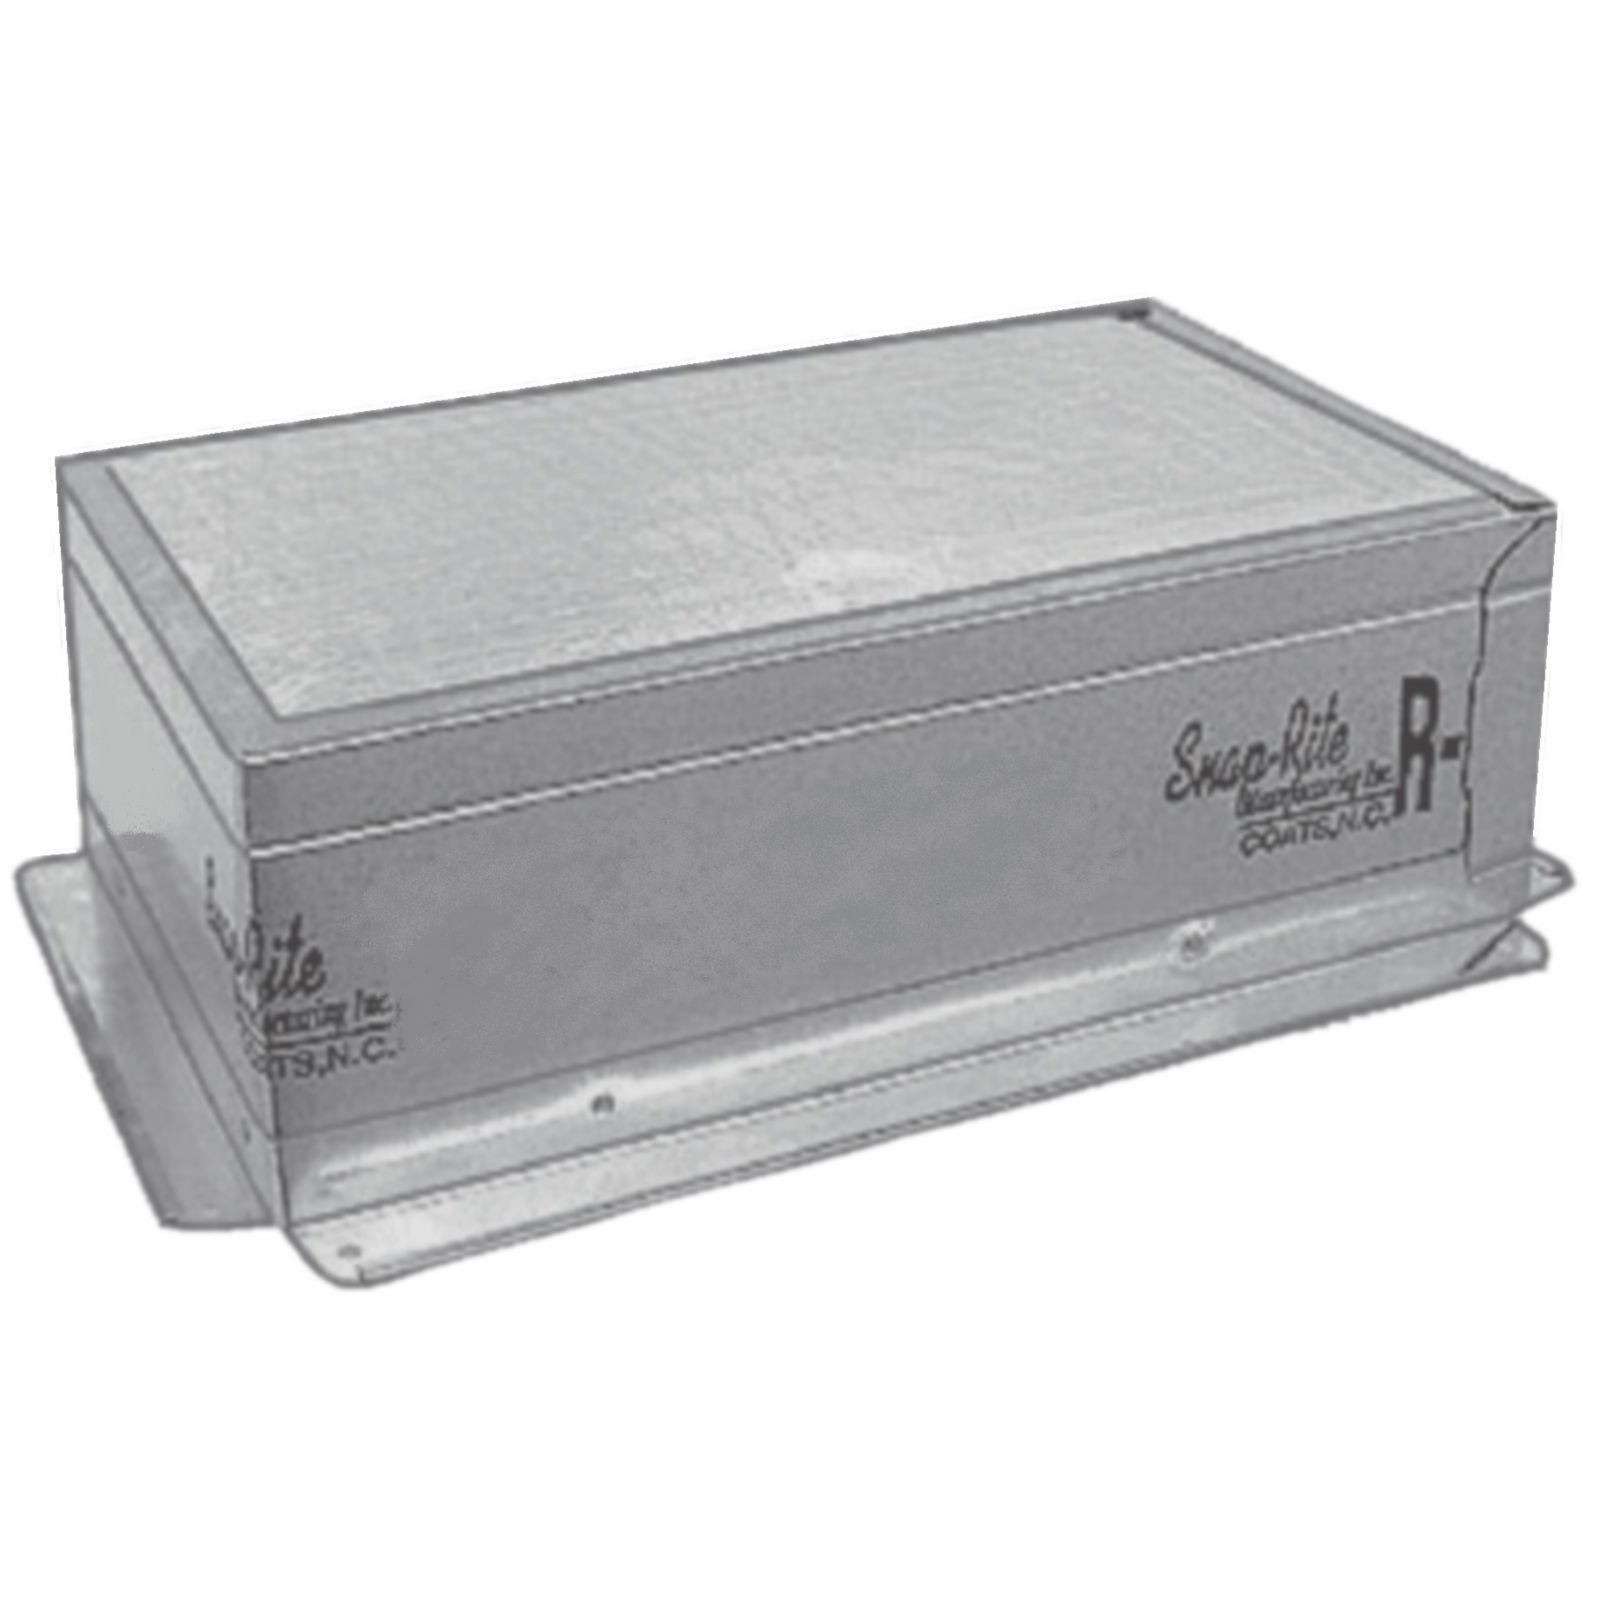 "Snap-Rite 24.5X12.5-3800F - Foil Top Insulated Register Box With Flange, 24.5"" x 12.5"" - R6"